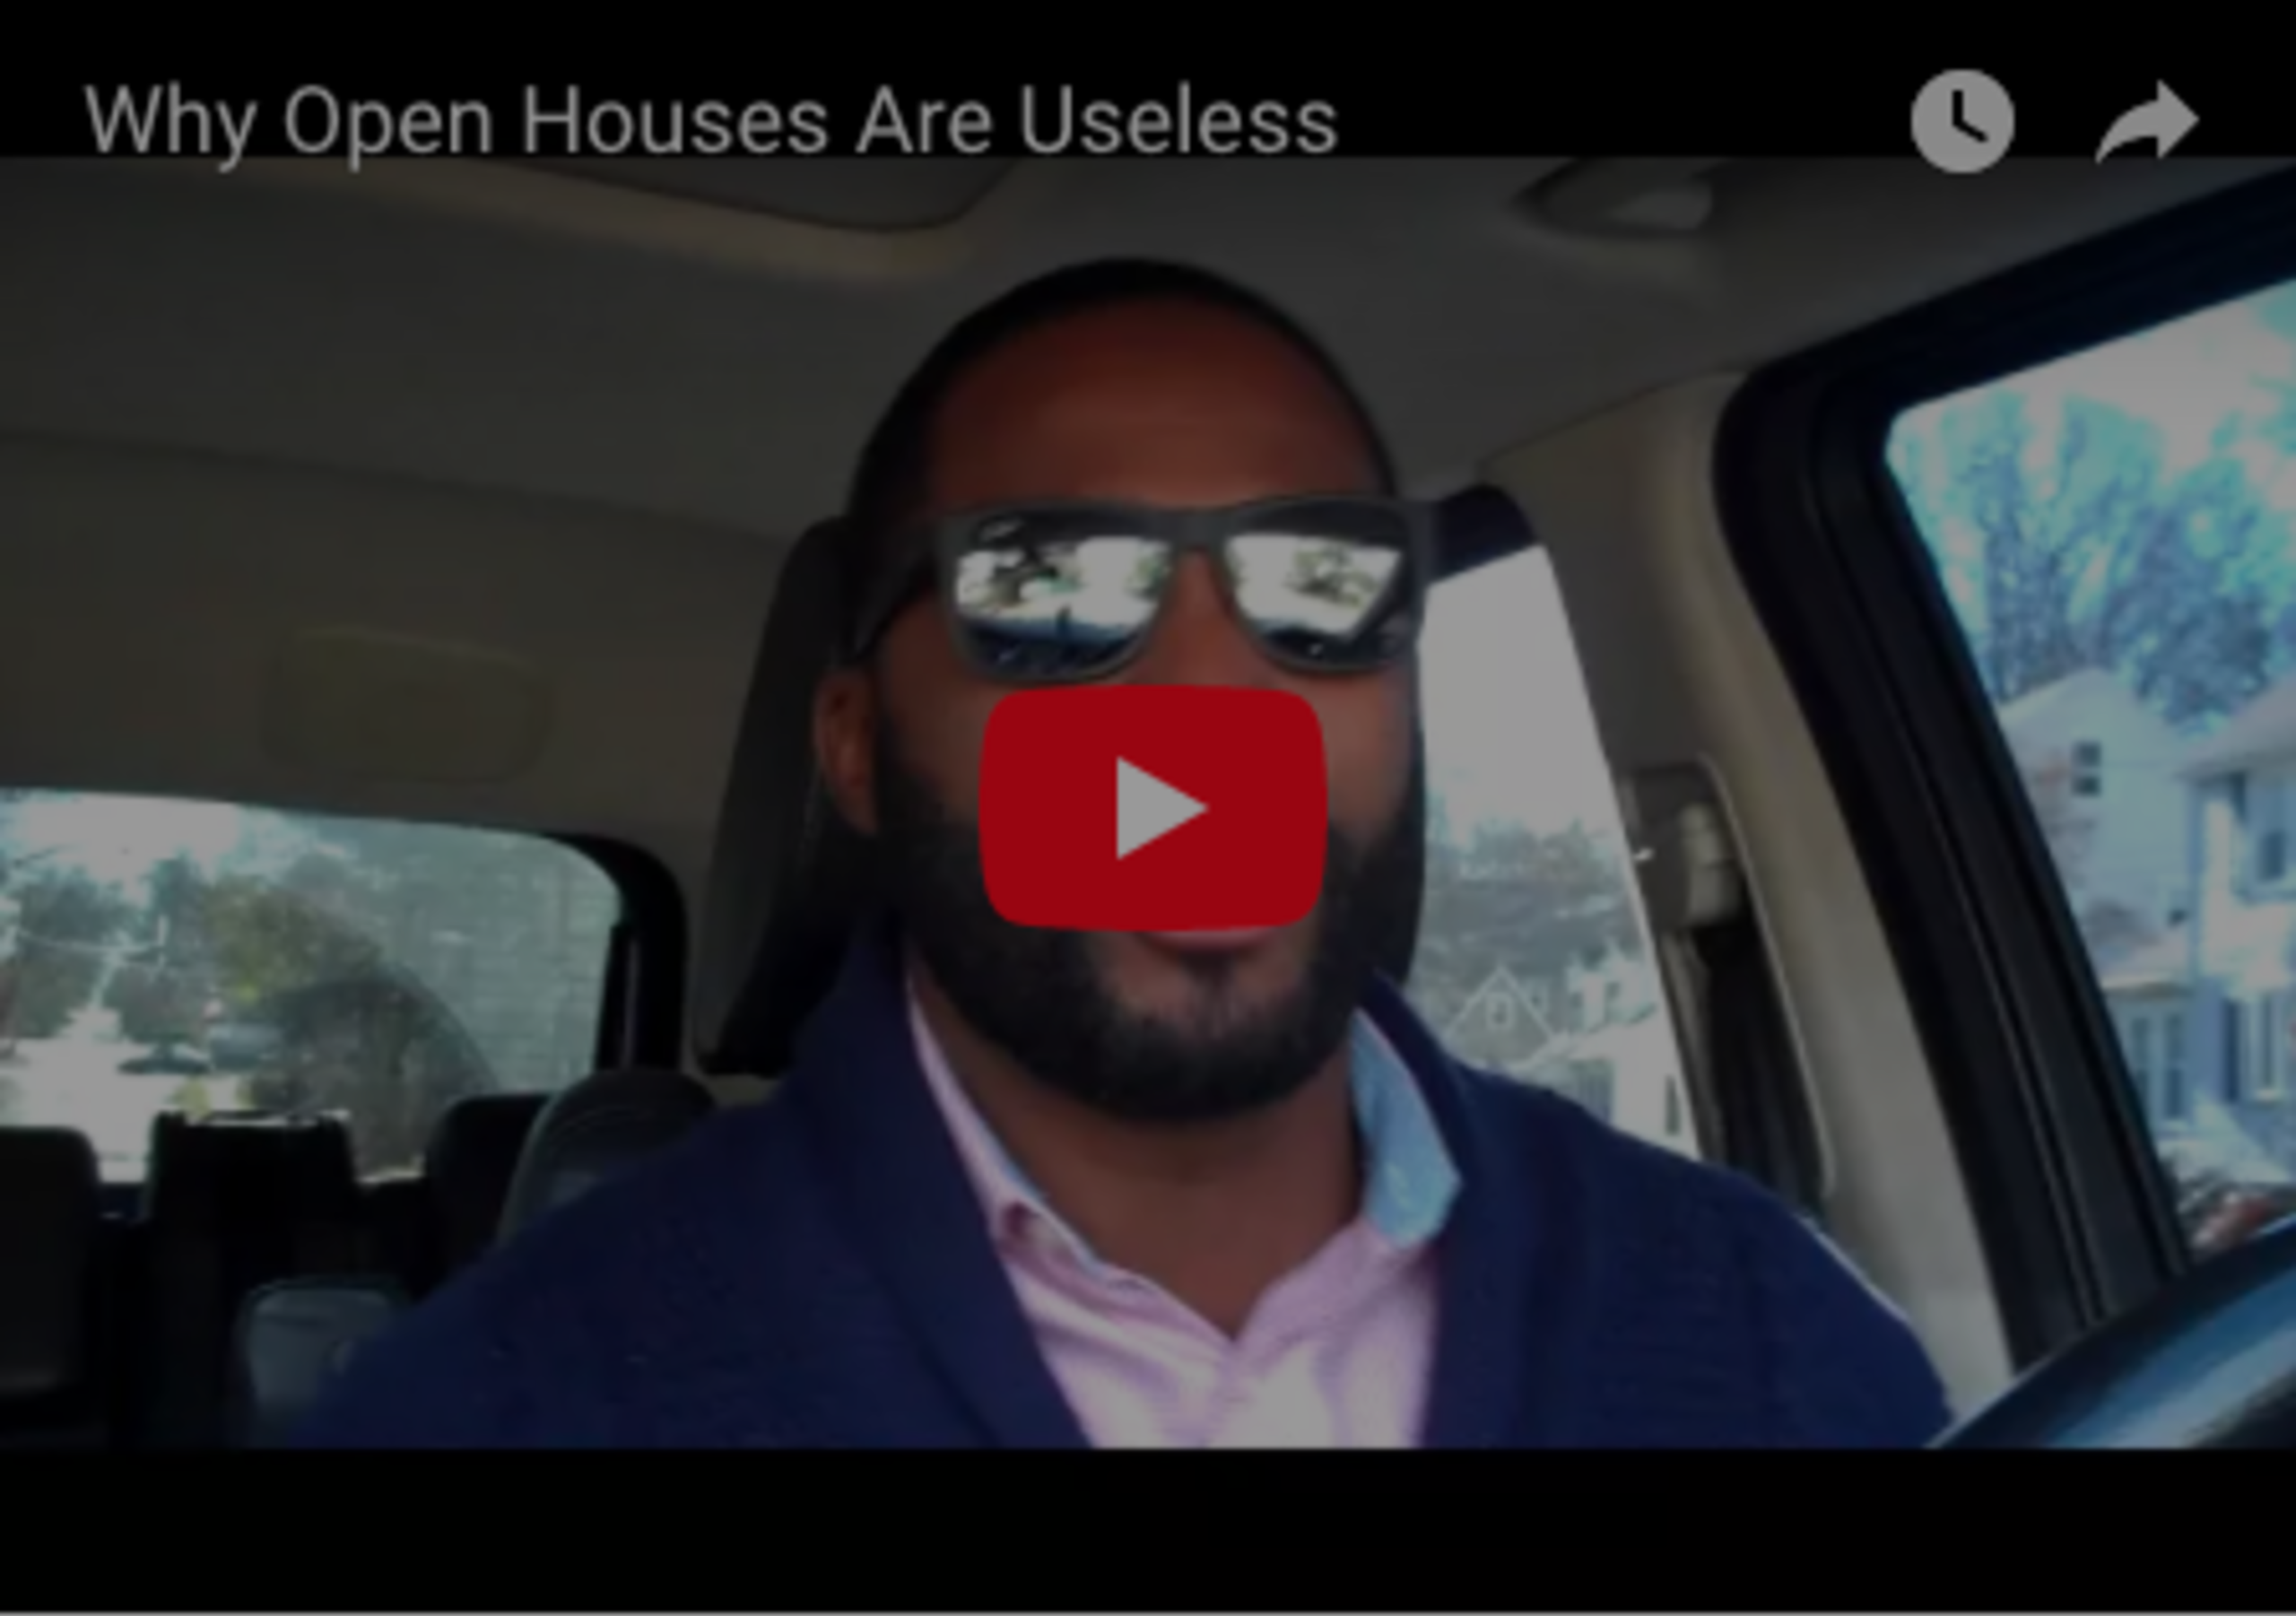 Why Open Houses Are Useless